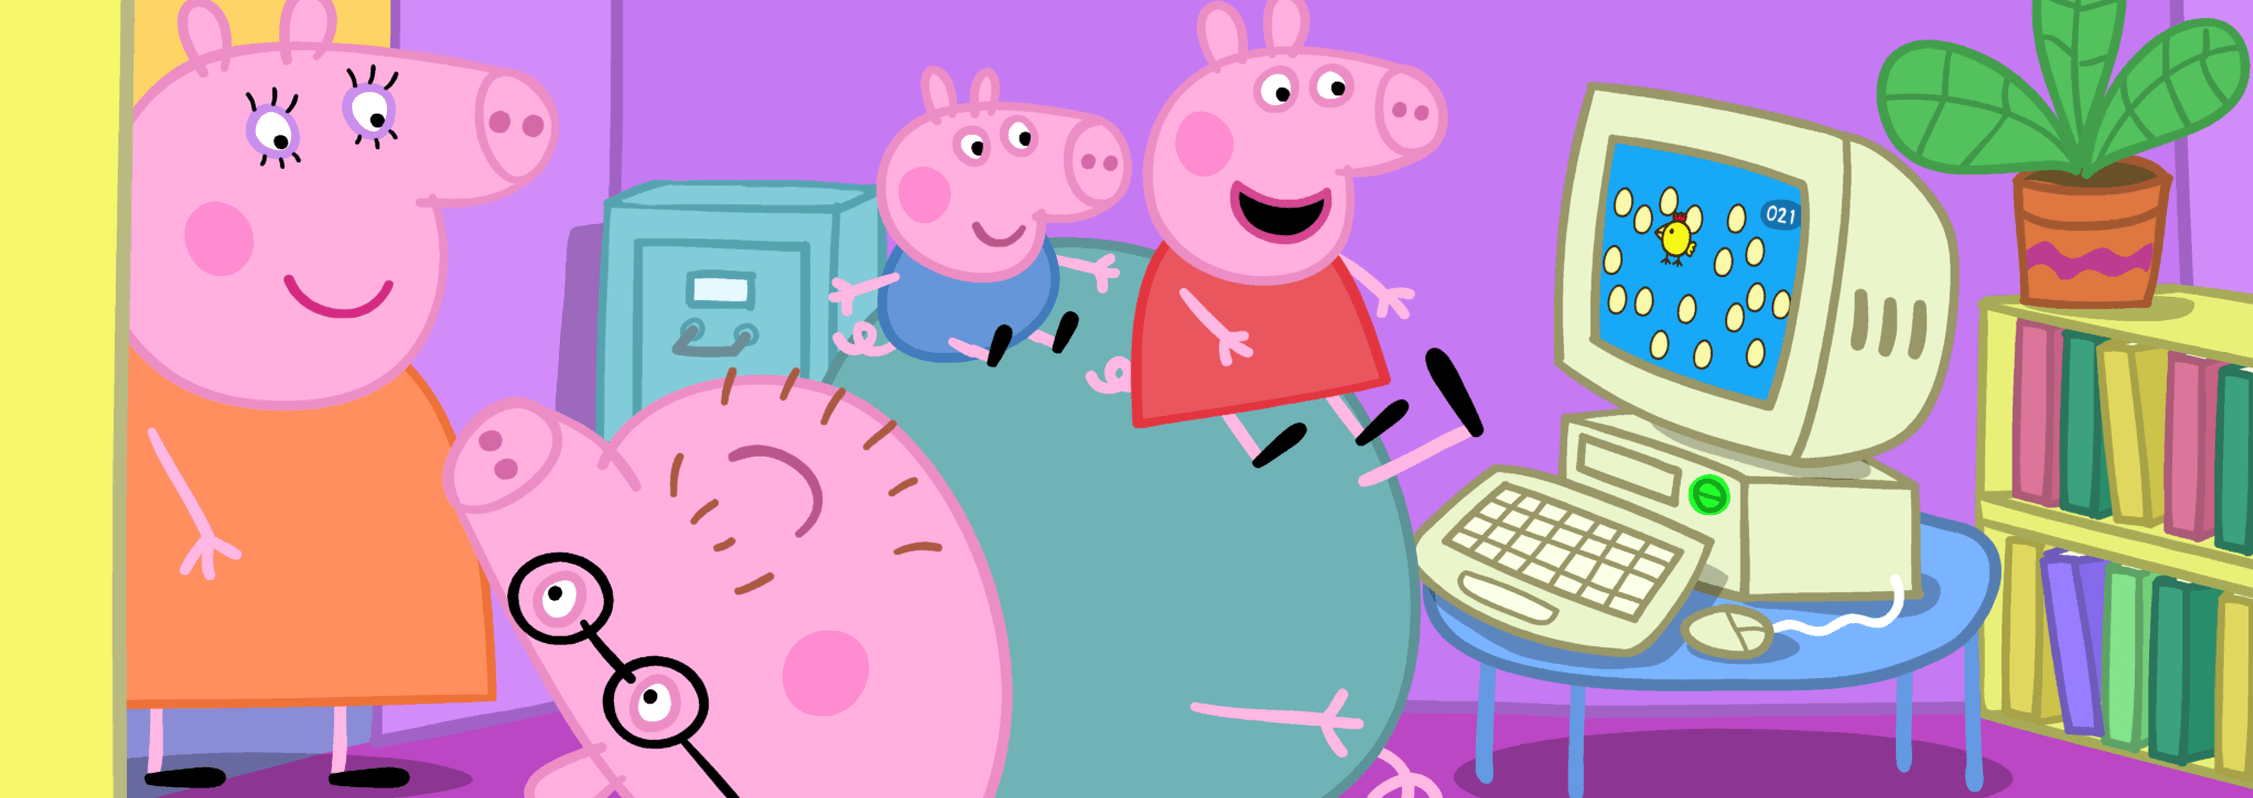 Peppa Pig Videos And Activities From Entertainment One Awesome Con